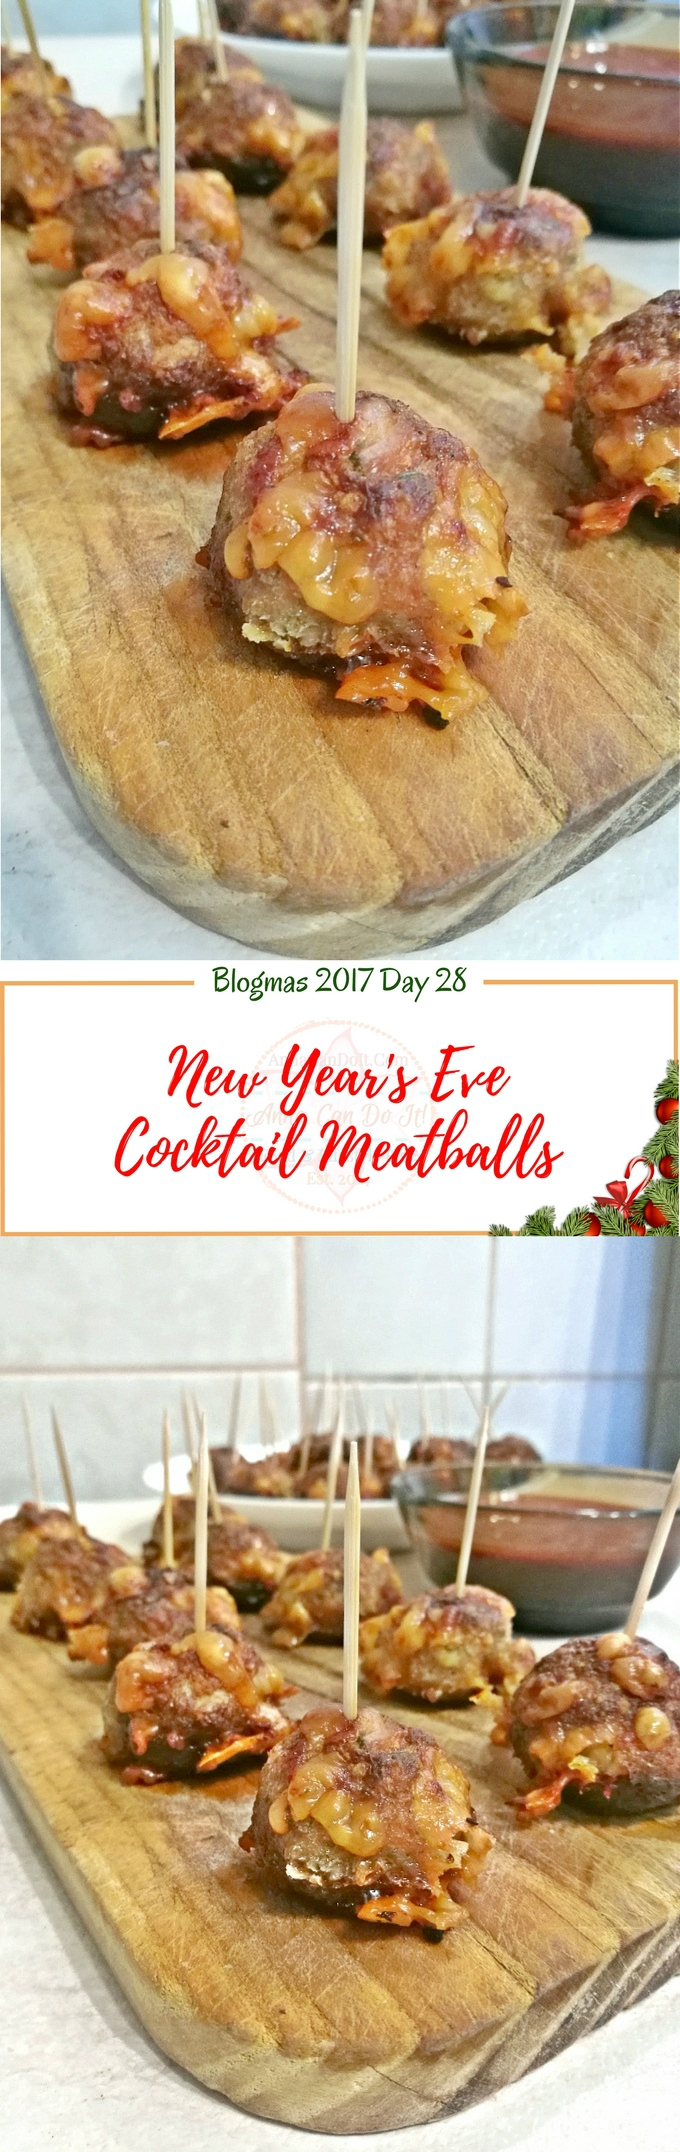 New Year's Eve Cocktail Meatballs - Blogmas 2017 Day 28 - Anna Can Do It!